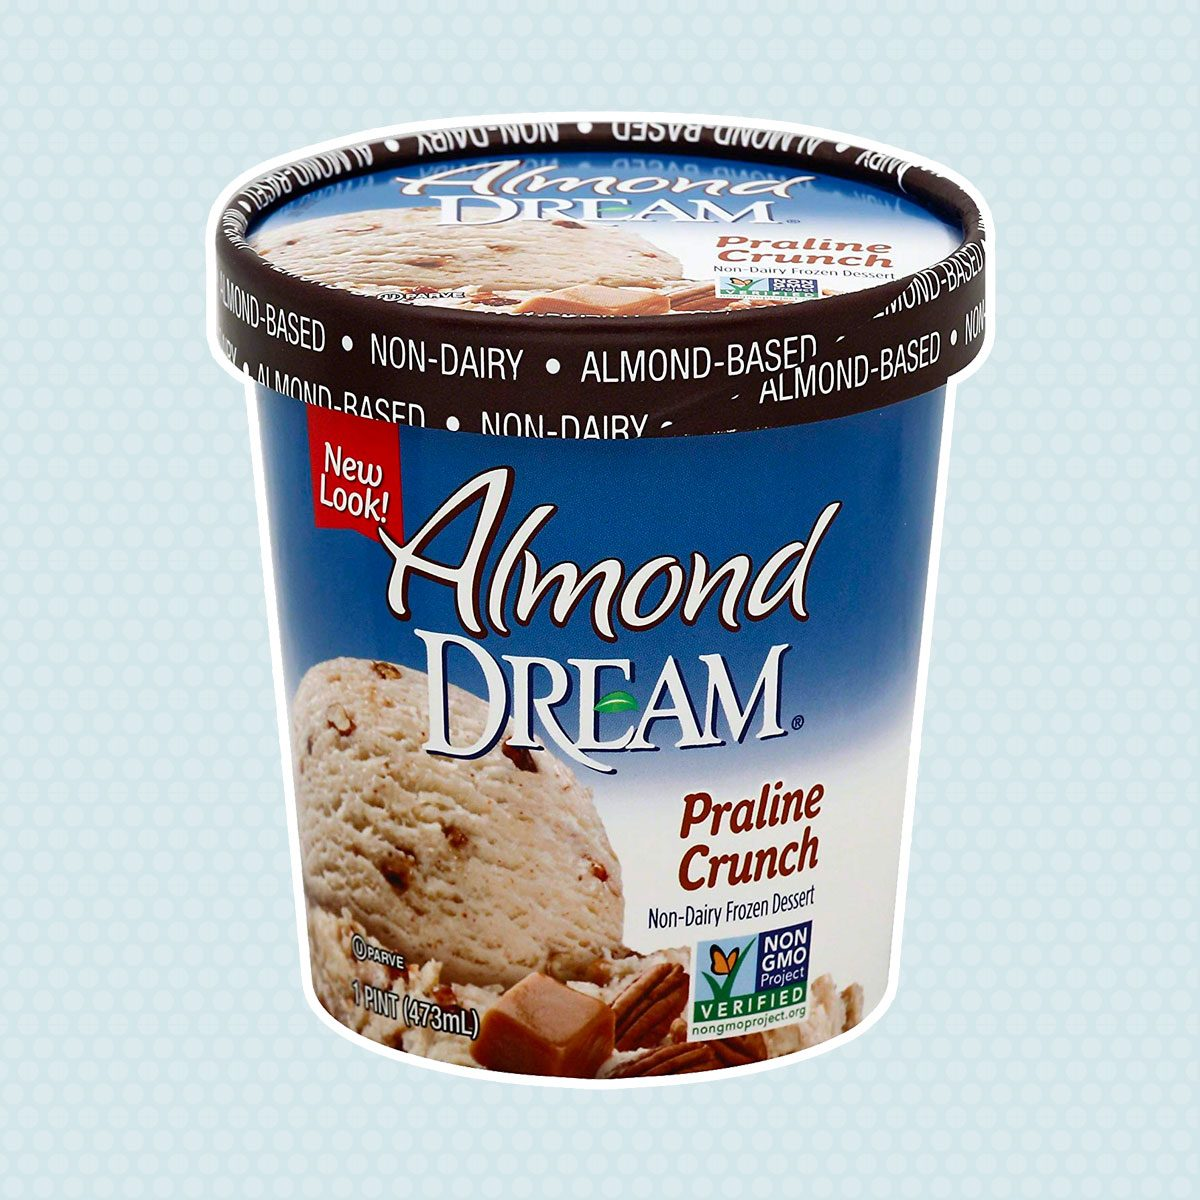 Almond Dream Praline Crunch Non-Dairy Dessert, 16 oz (frozen)